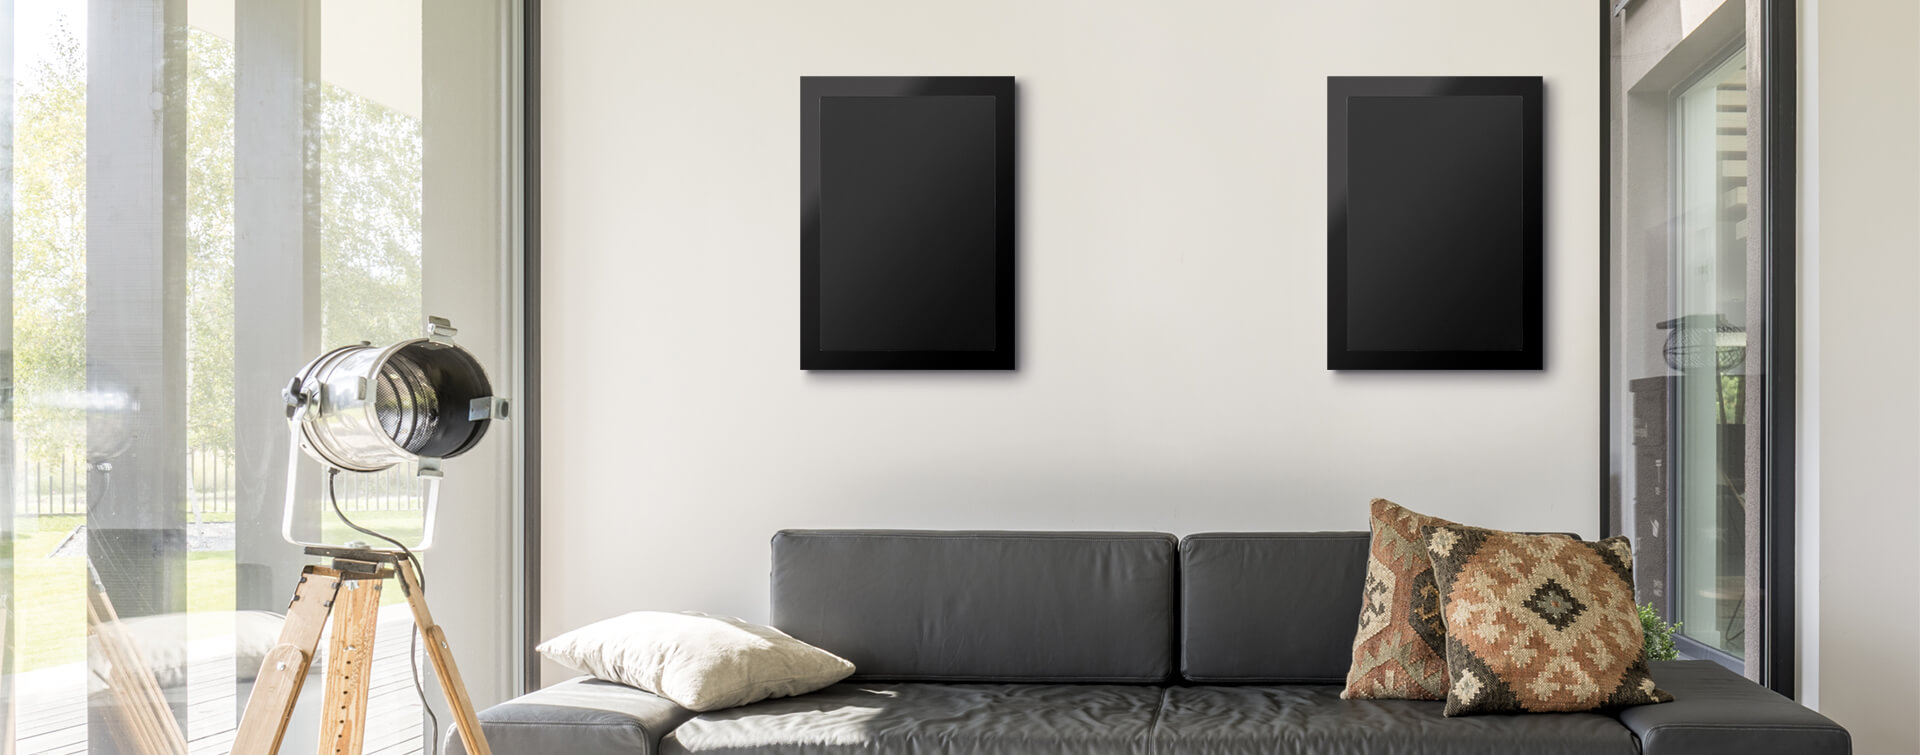 SoundFrame SF1 on-wall speakers.